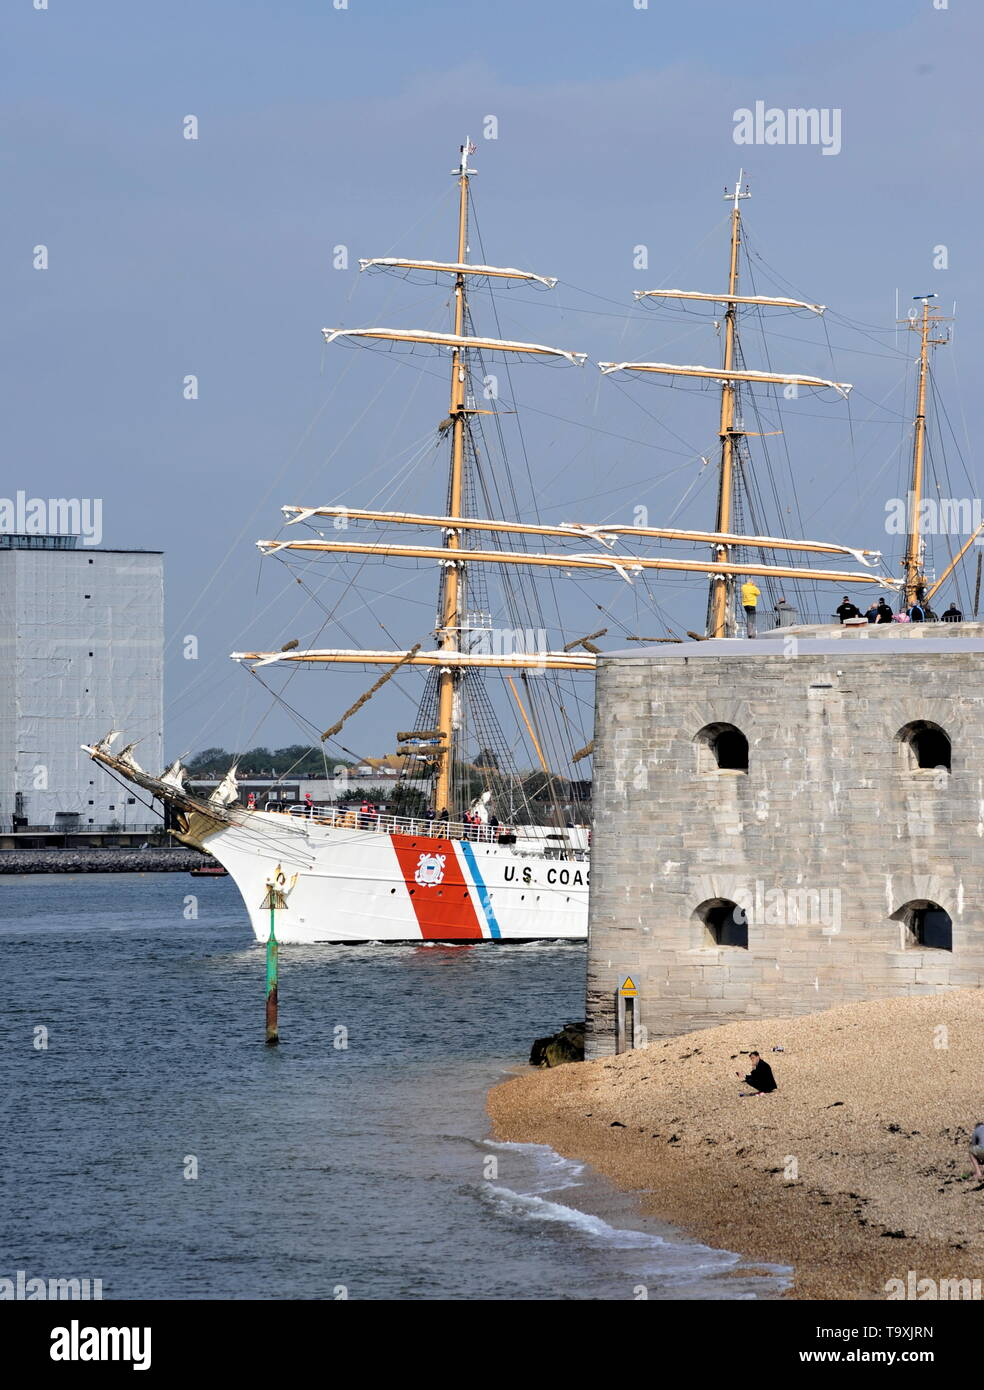 AJAX NEWS PHOTOS. 30TH APRIL, 2019. PORTSMOUTH,ENGLAND. - U.S. COAST GUARD TRAINING SHIP EAGLE, BUILT 1936 BY GERMAN YARD BLOHMN & VOSS AS THE HORST WESSEL, OUTWARD BOUND AFTER A COURTESY VISIT. PHOTO:TONY HOLLAND/AJAX REF:DTH191105_7710 - Stock Image